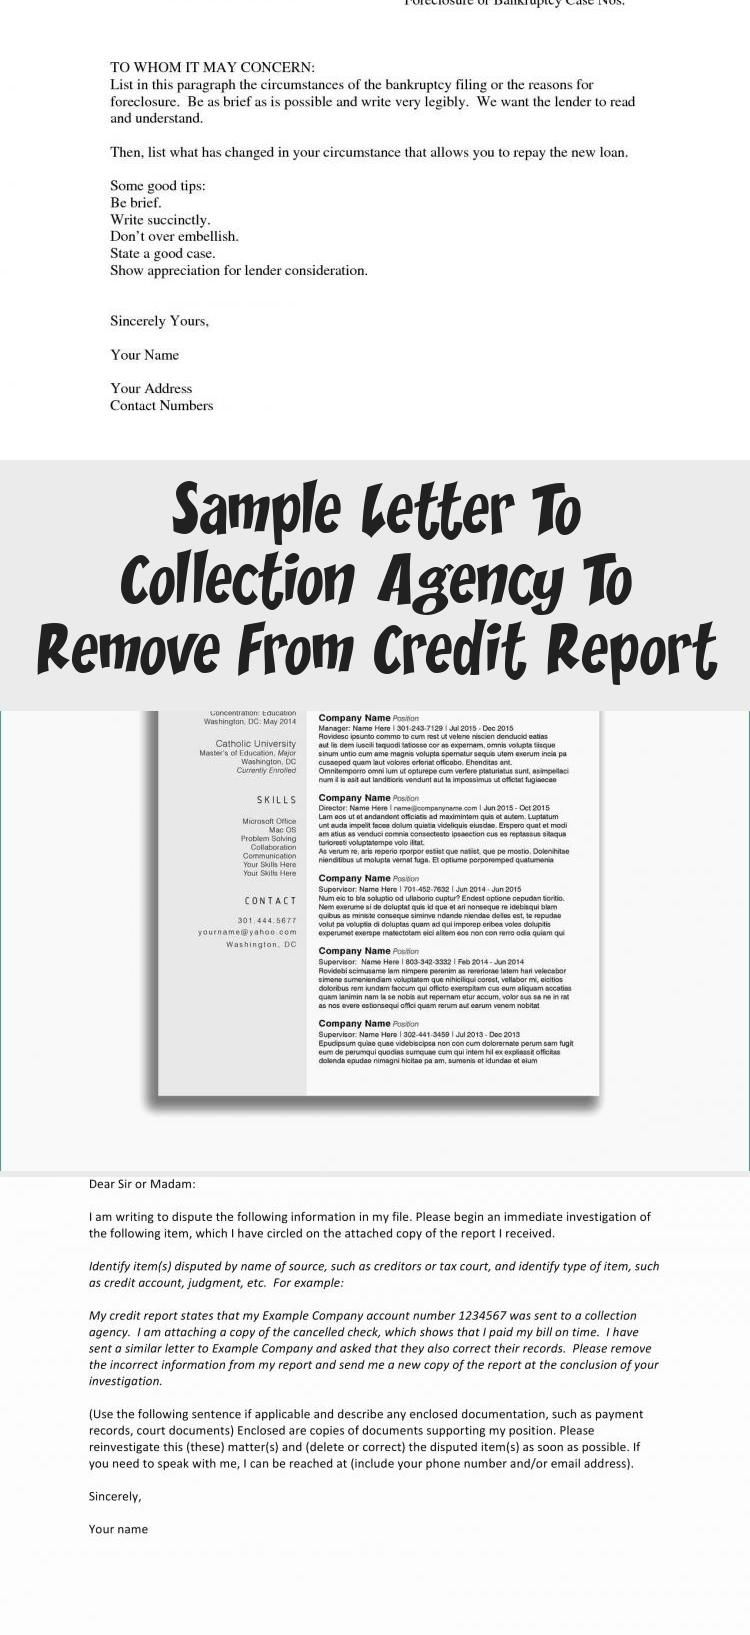 Remove collections from credit report without paying